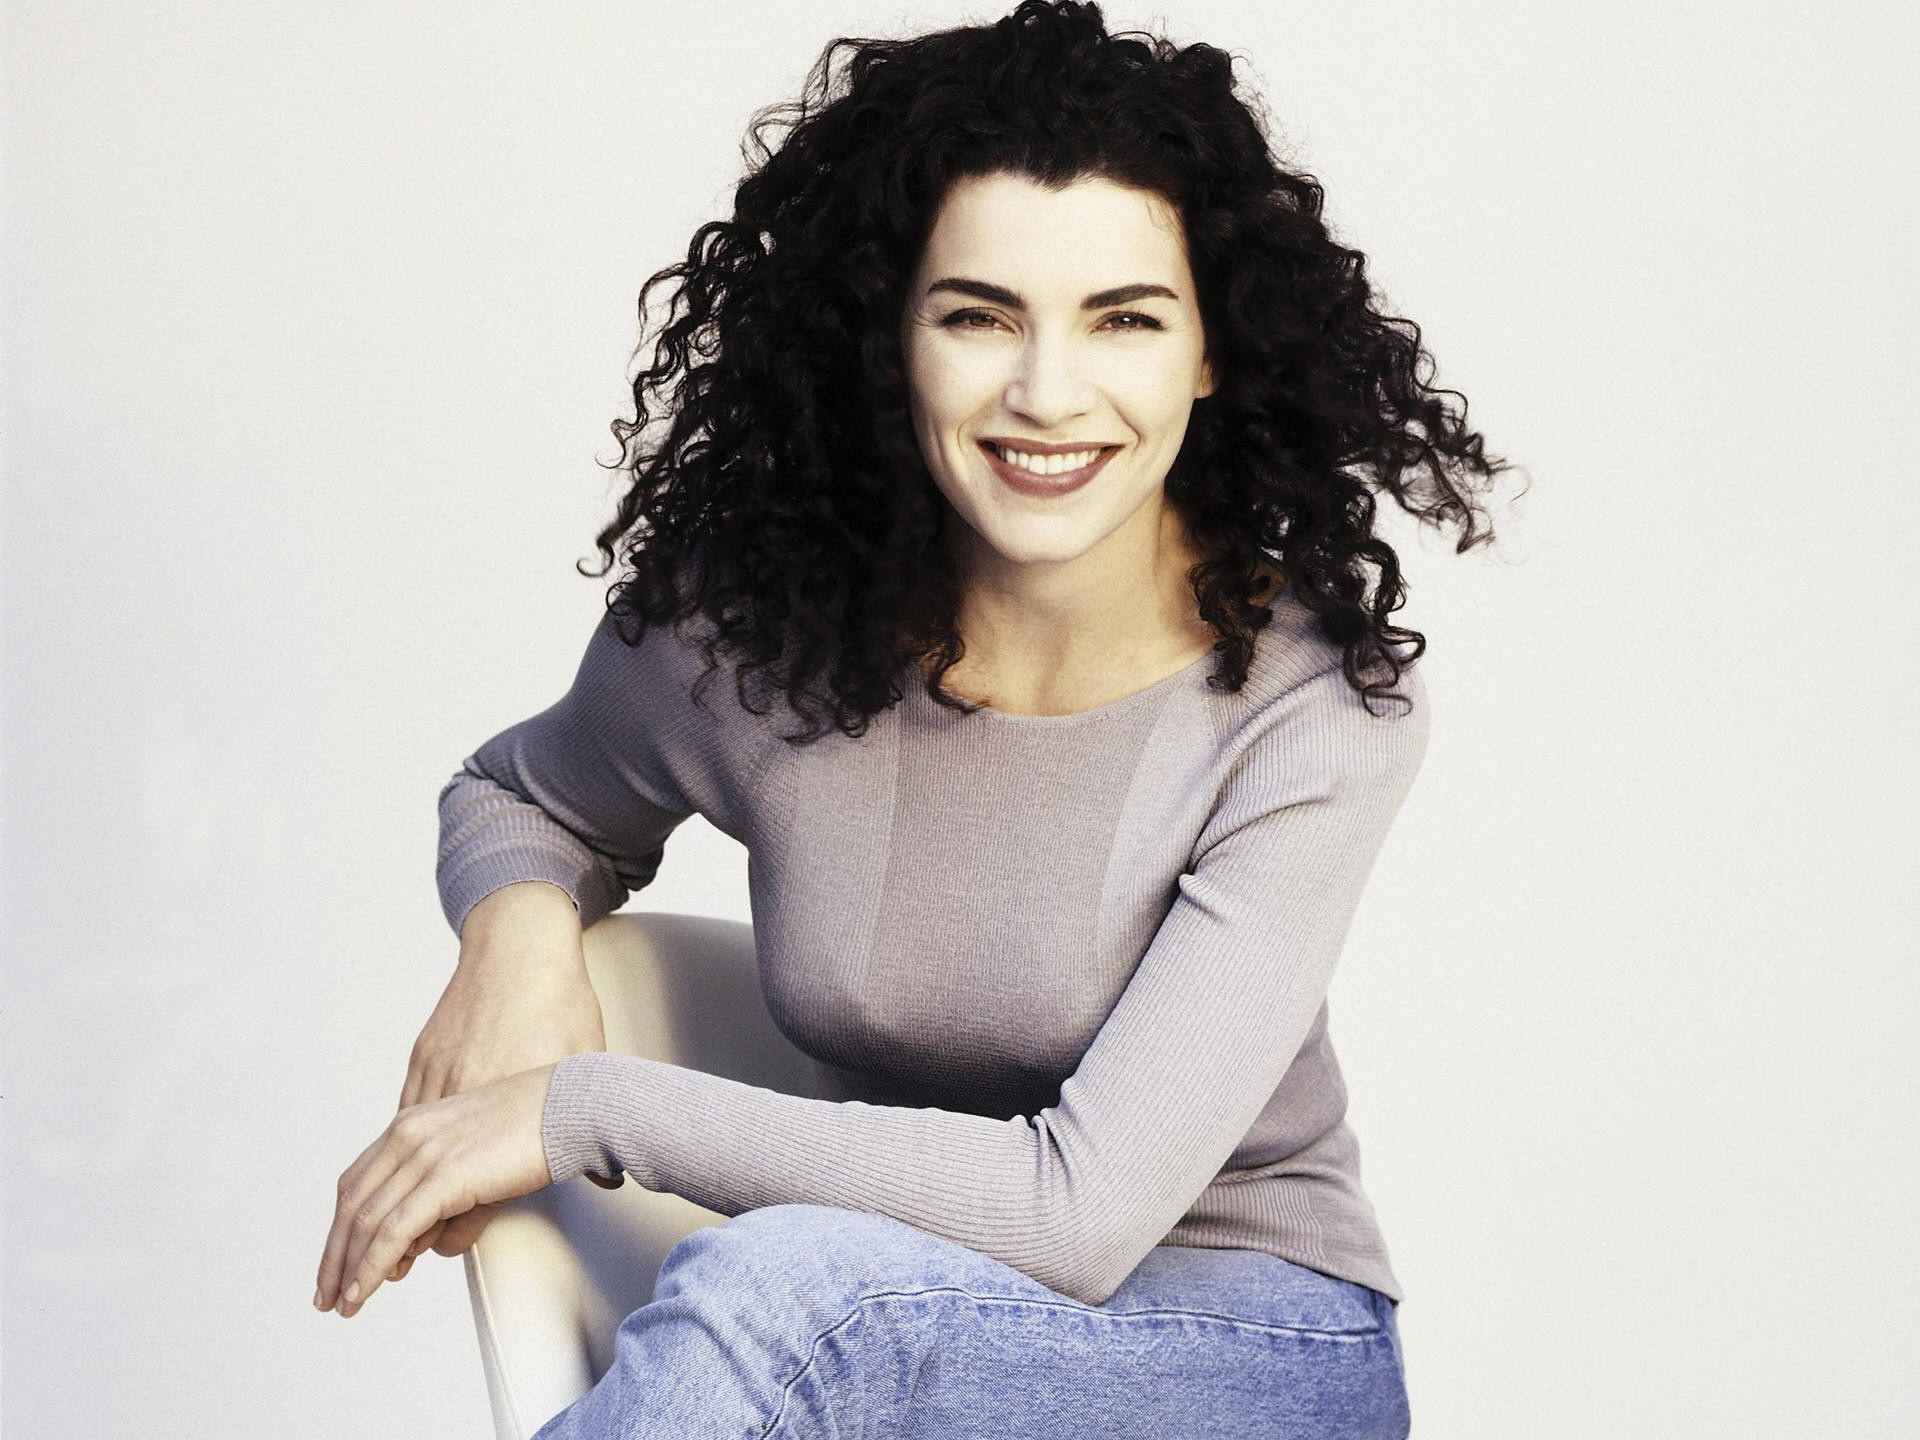 Julianna Margulies Quotes 50 Wallpapers: Julianna Margulies Picture